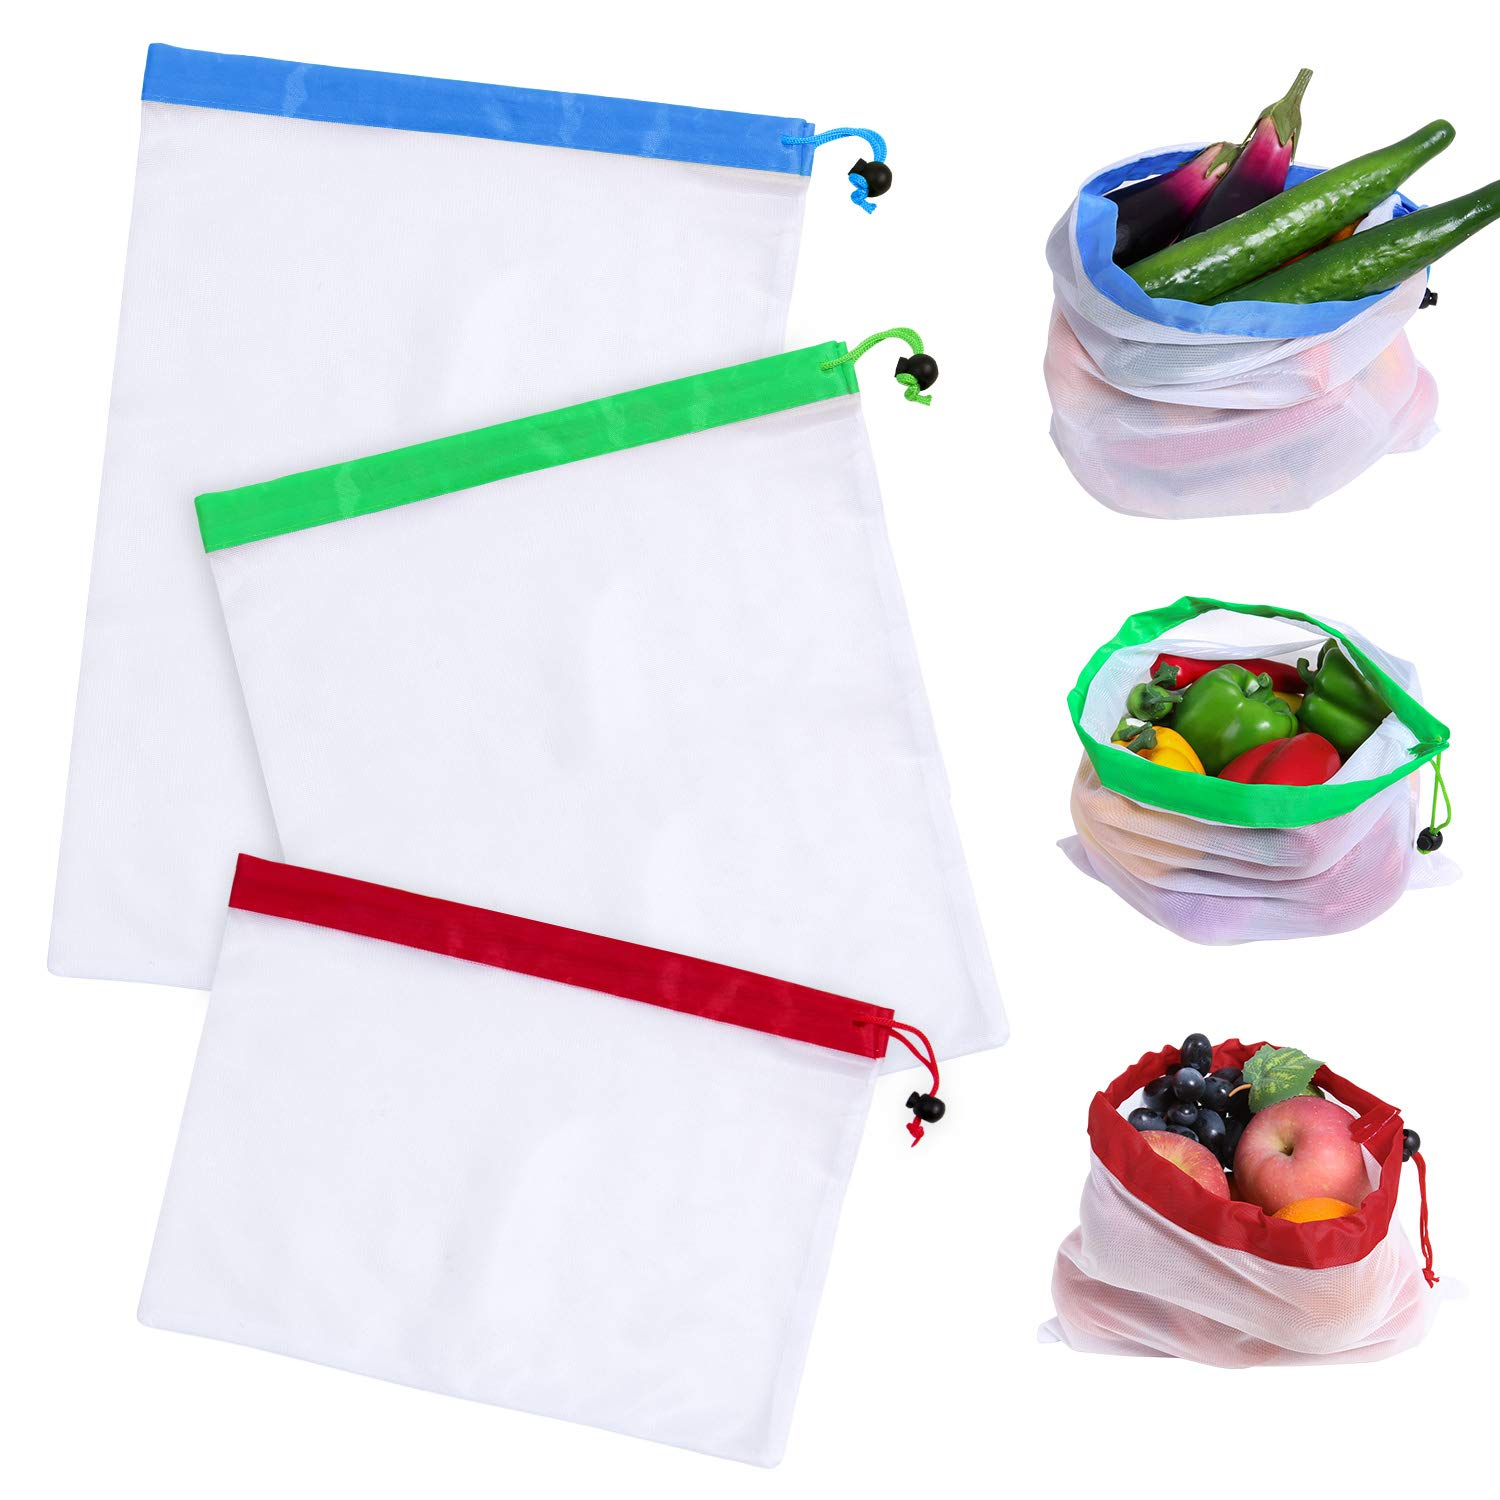 15Pcs Drawstring Mesh Produce Bags Reusable Eco Friendly Shopping Grocery Bags Small Large Folding Green Fresh Fruit Vegetable Bag for Home Toy Craft, Fridge Food Storage M MILLIONGADGETS